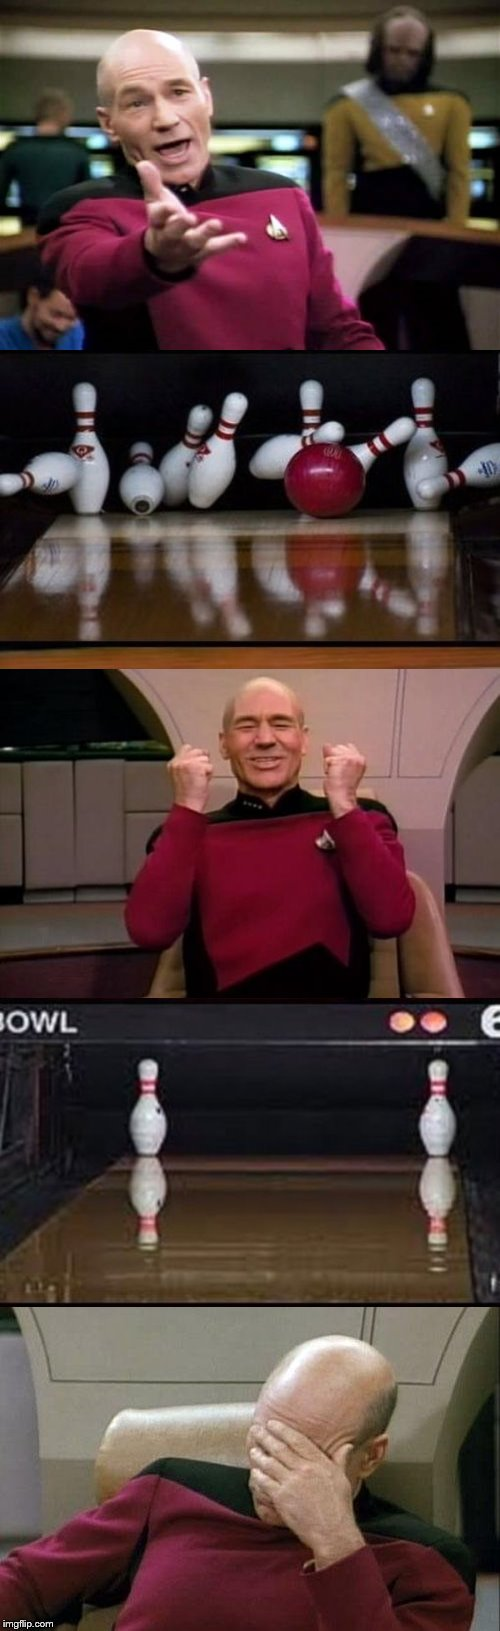 The 3 Stages Of Picard | COME ON BABY I HATE THIS GAME YES | image tagged in memes,picard wtf,excited picard,captain picard facepalm,bowling,goal or bed posts | made w/ Imgflip meme maker